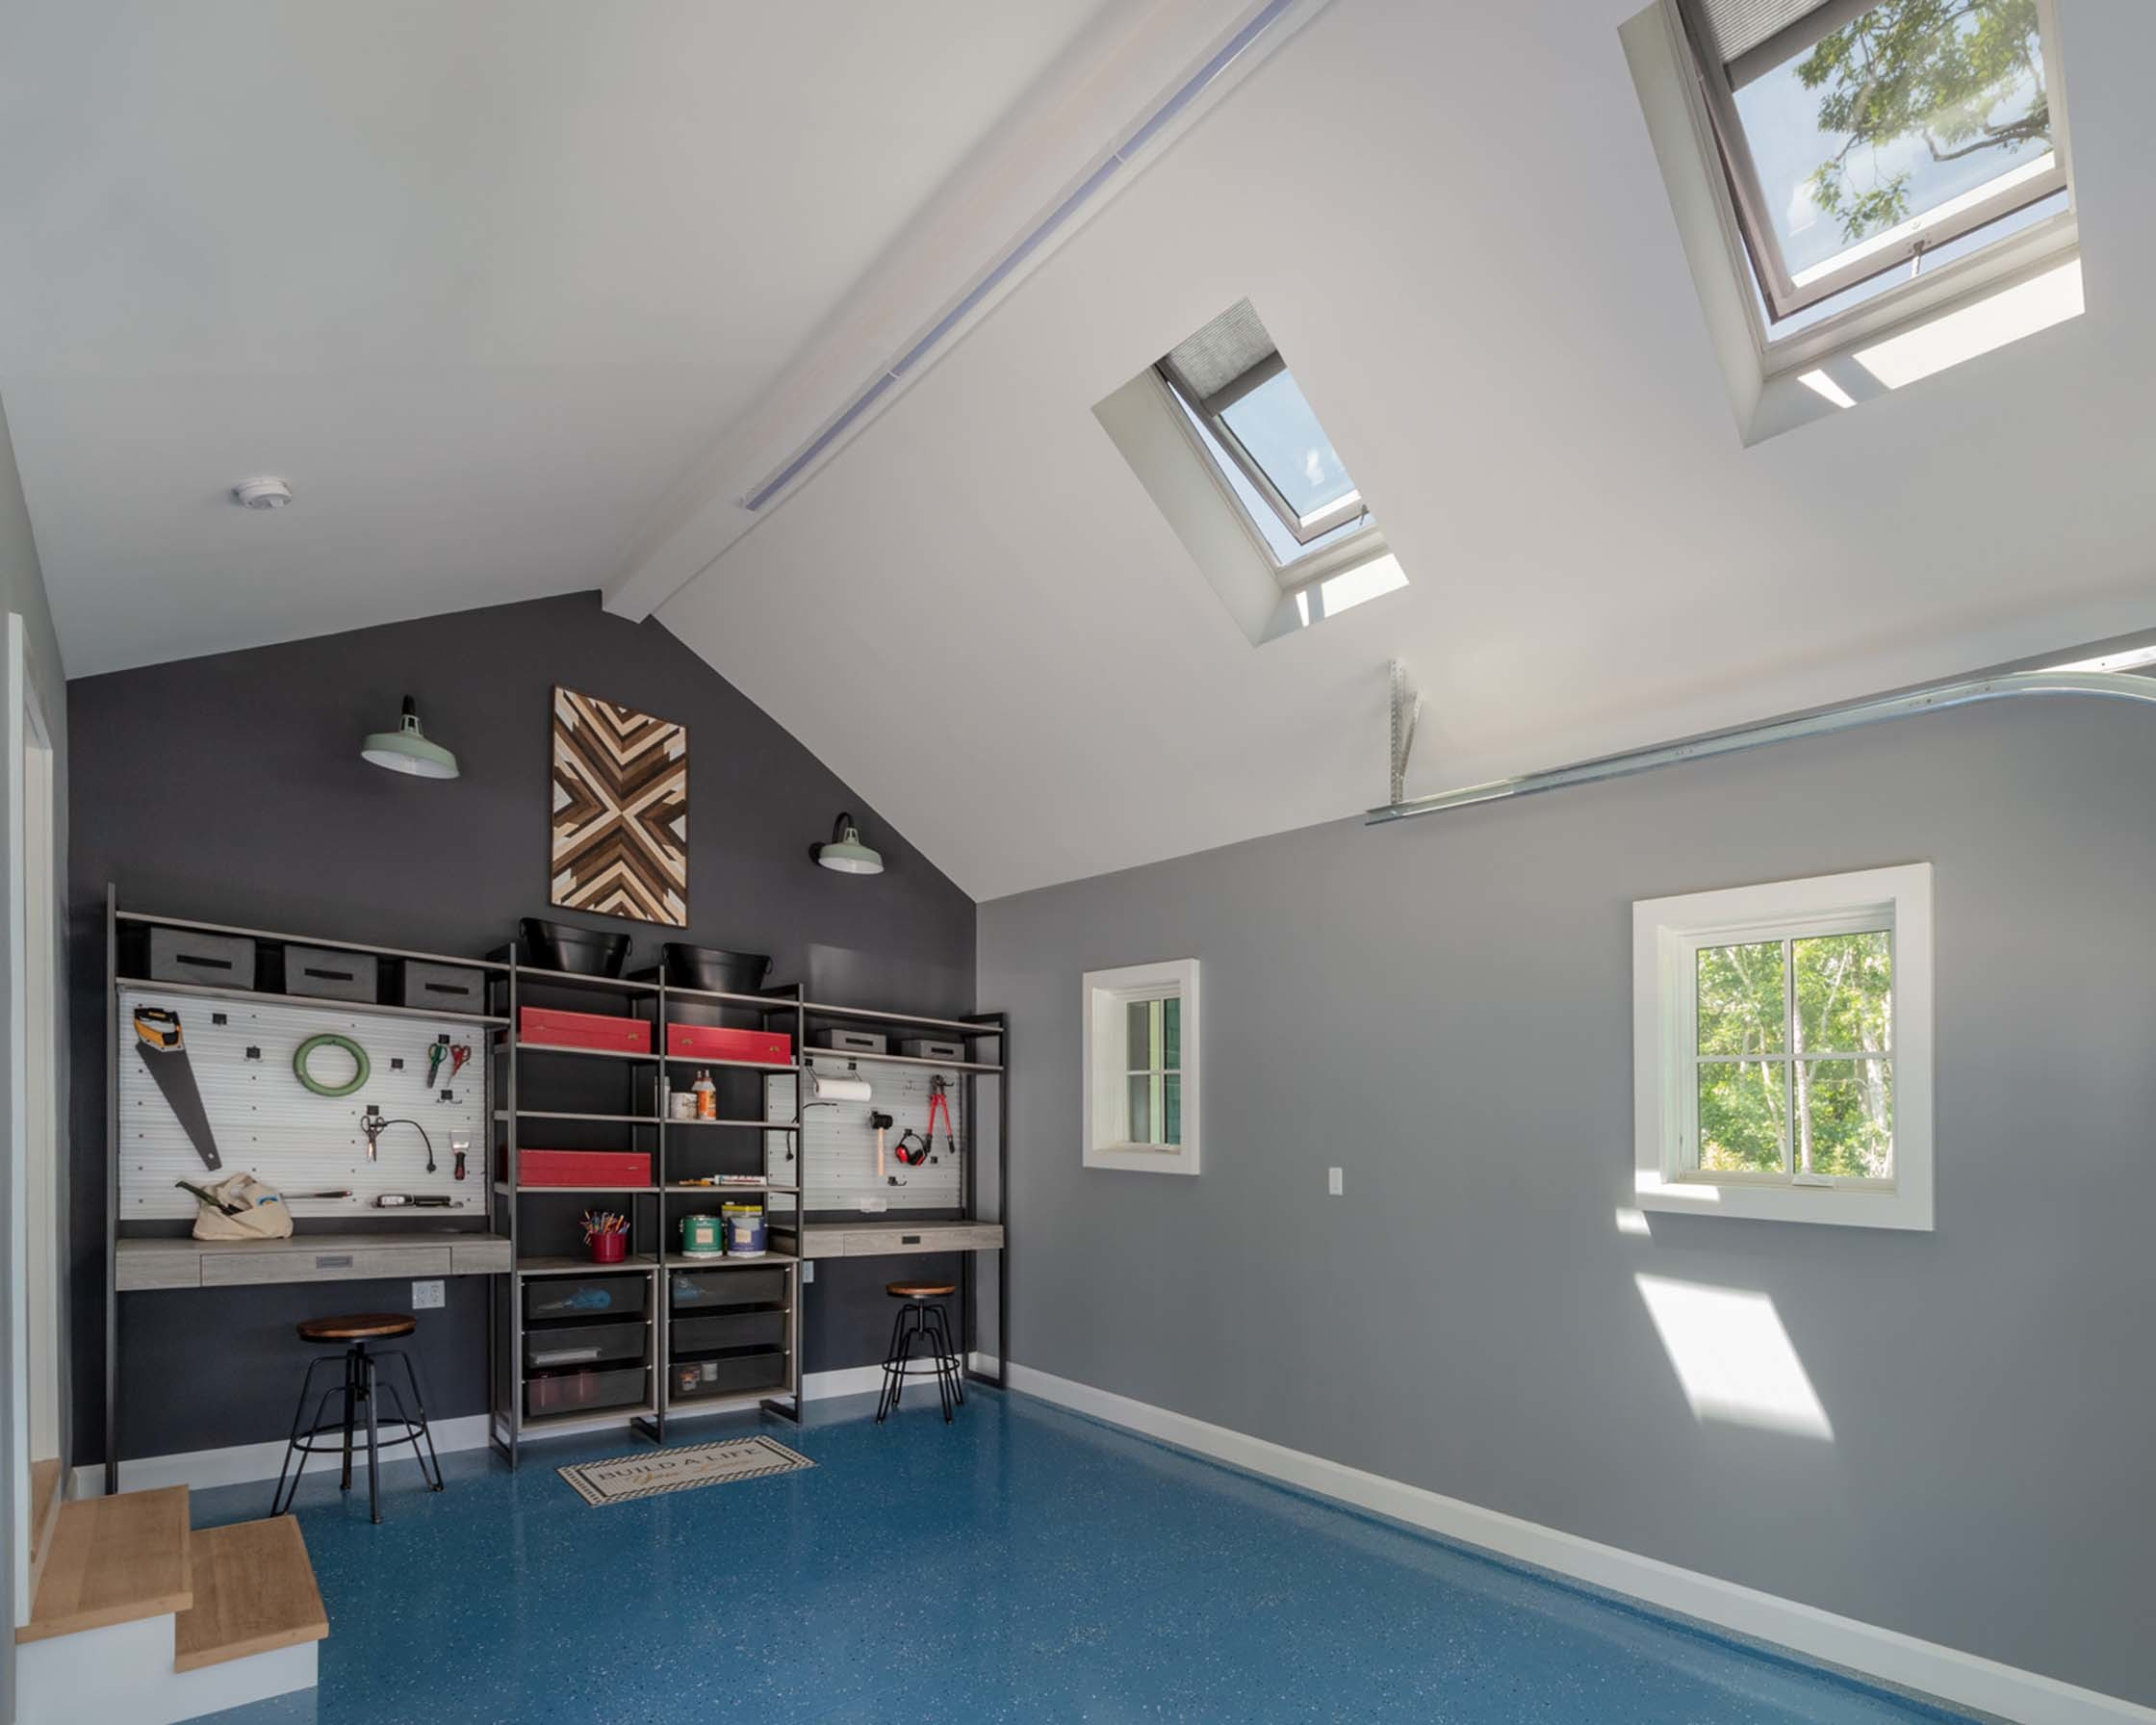 grey and blue garage or maker space with two skylights